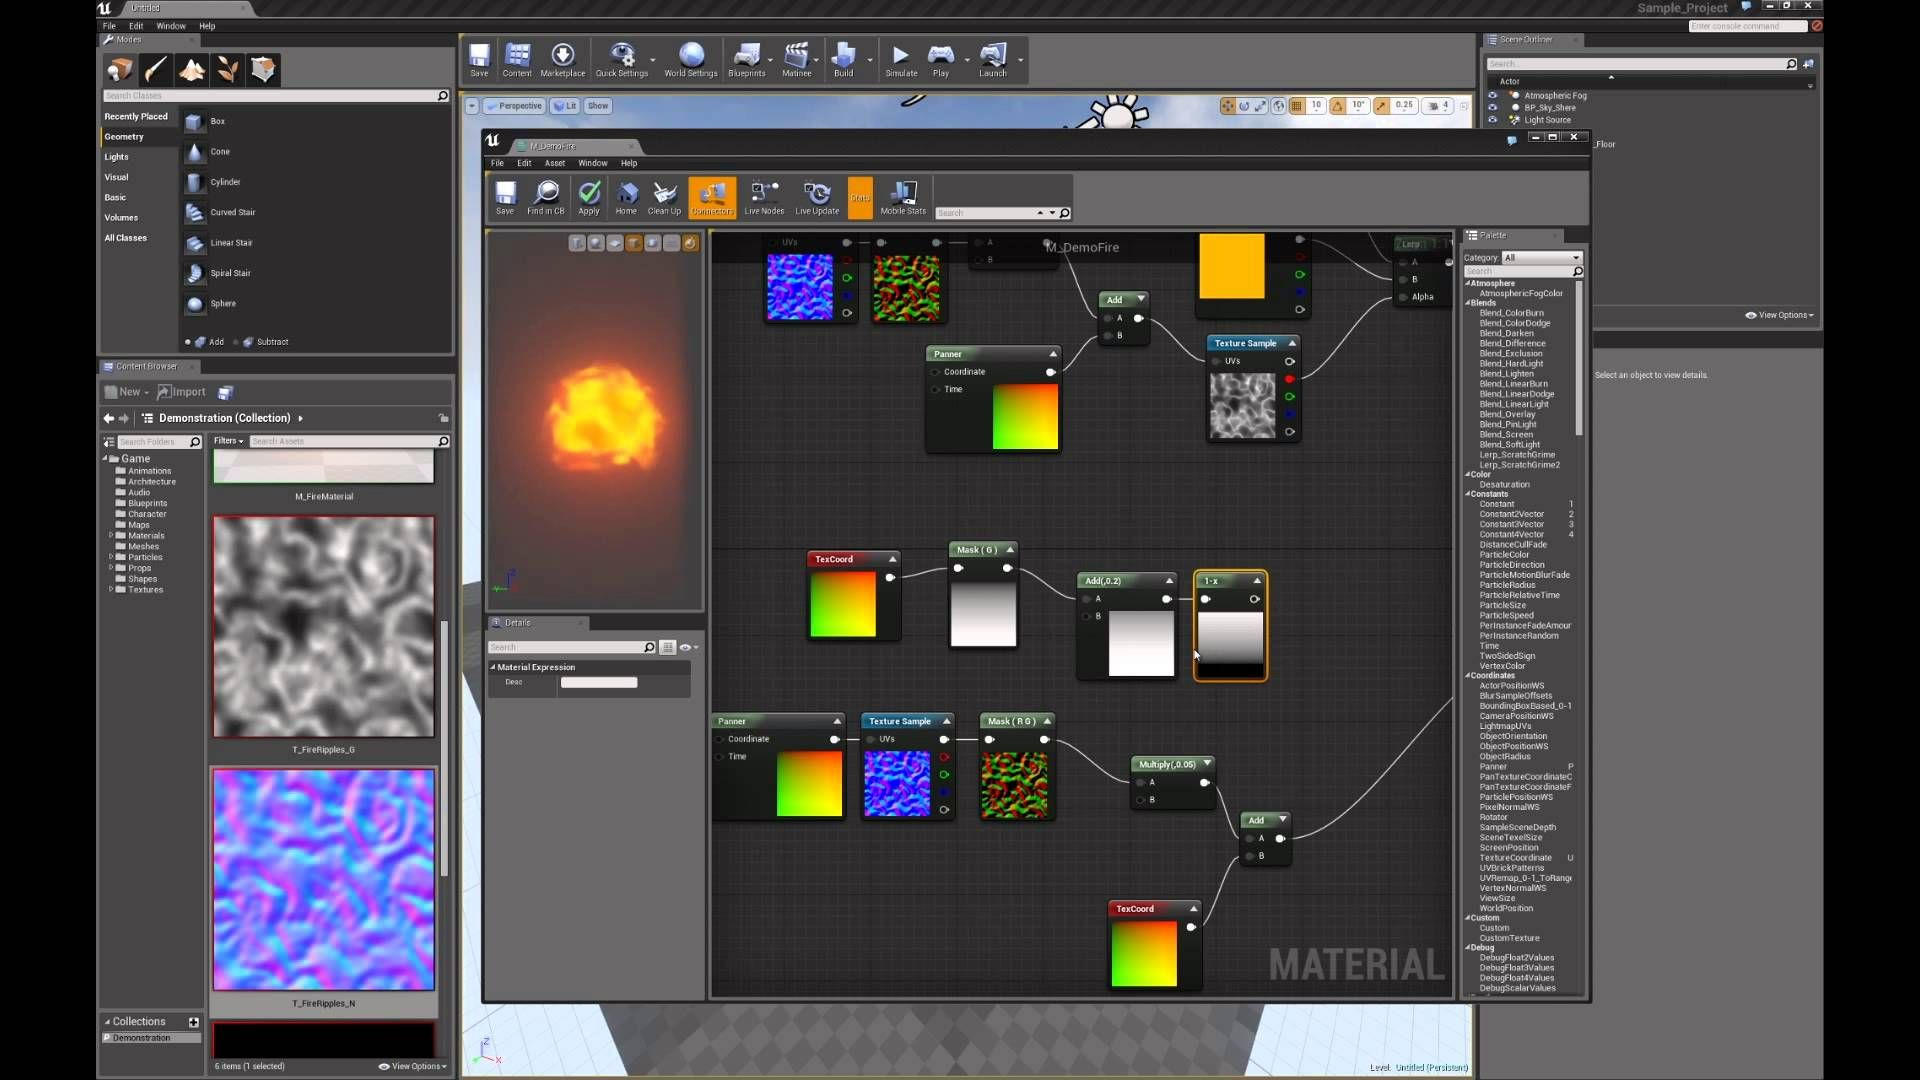 Fire Material in Unreal Engine 4 | Tutorials in 2019